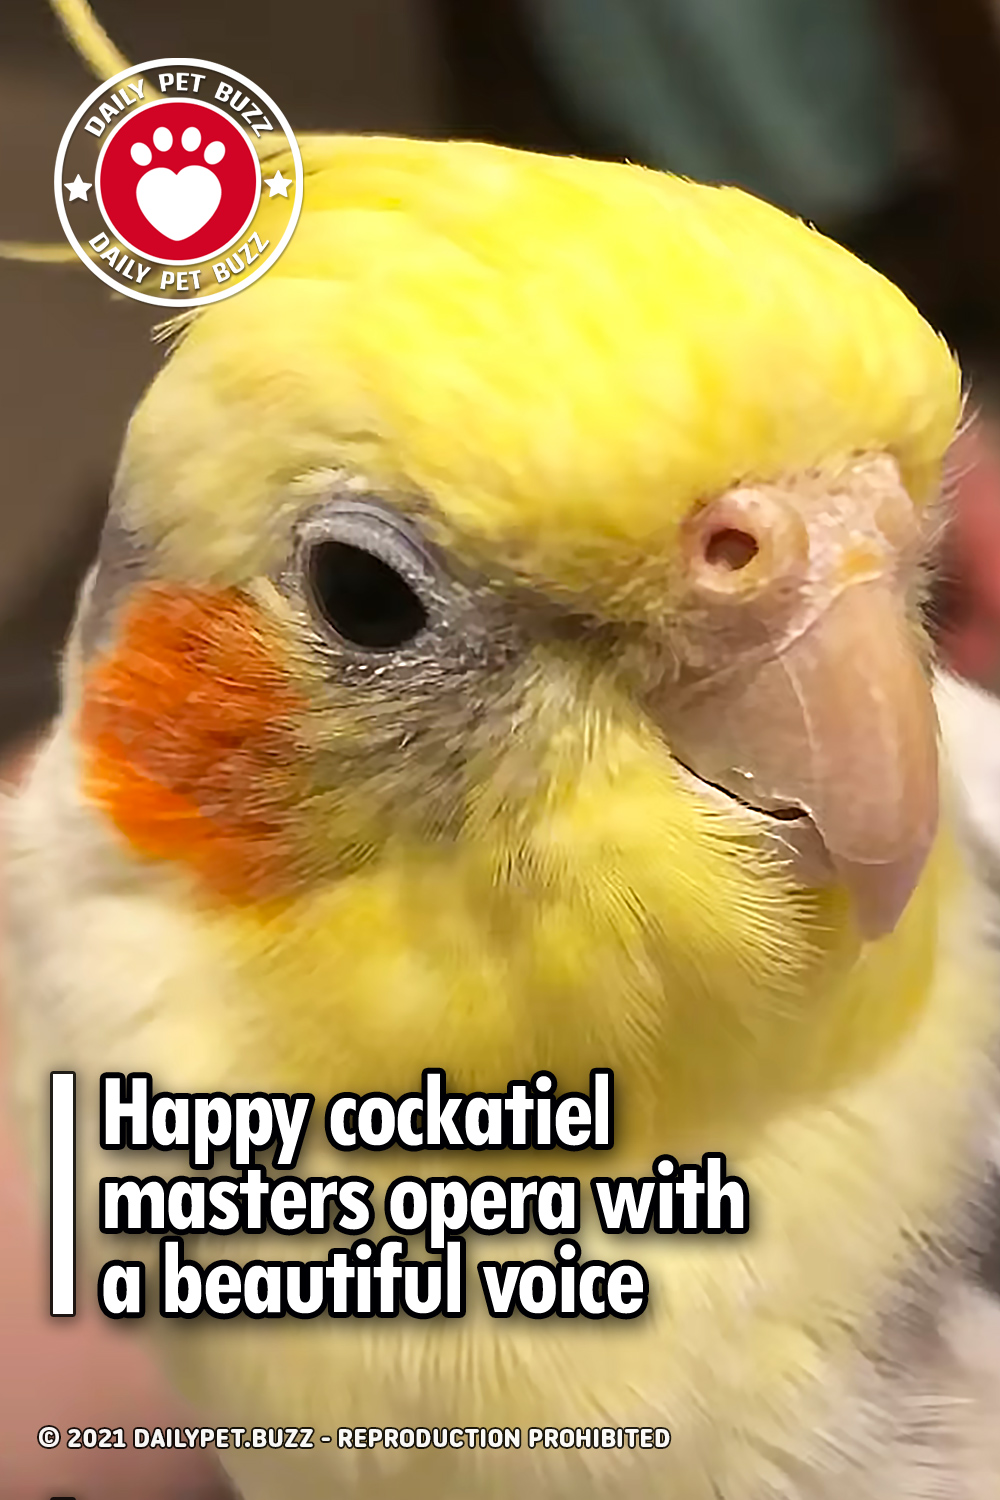 Happy cockatiel masters opera with a beautiful voice